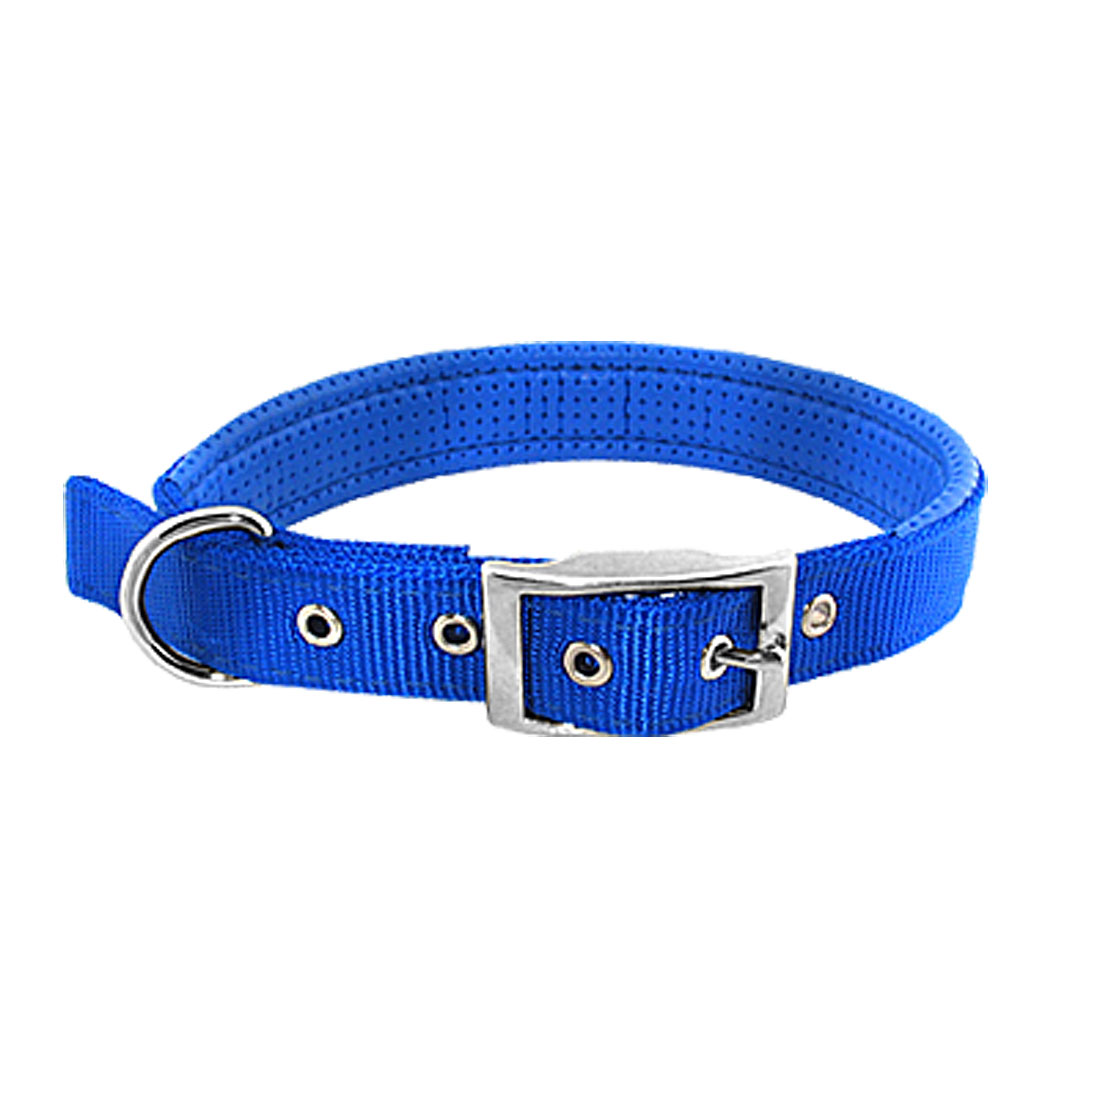 Tropical Blue Soft Leather High Strength Nylon Dog Collar Strap - Large Size